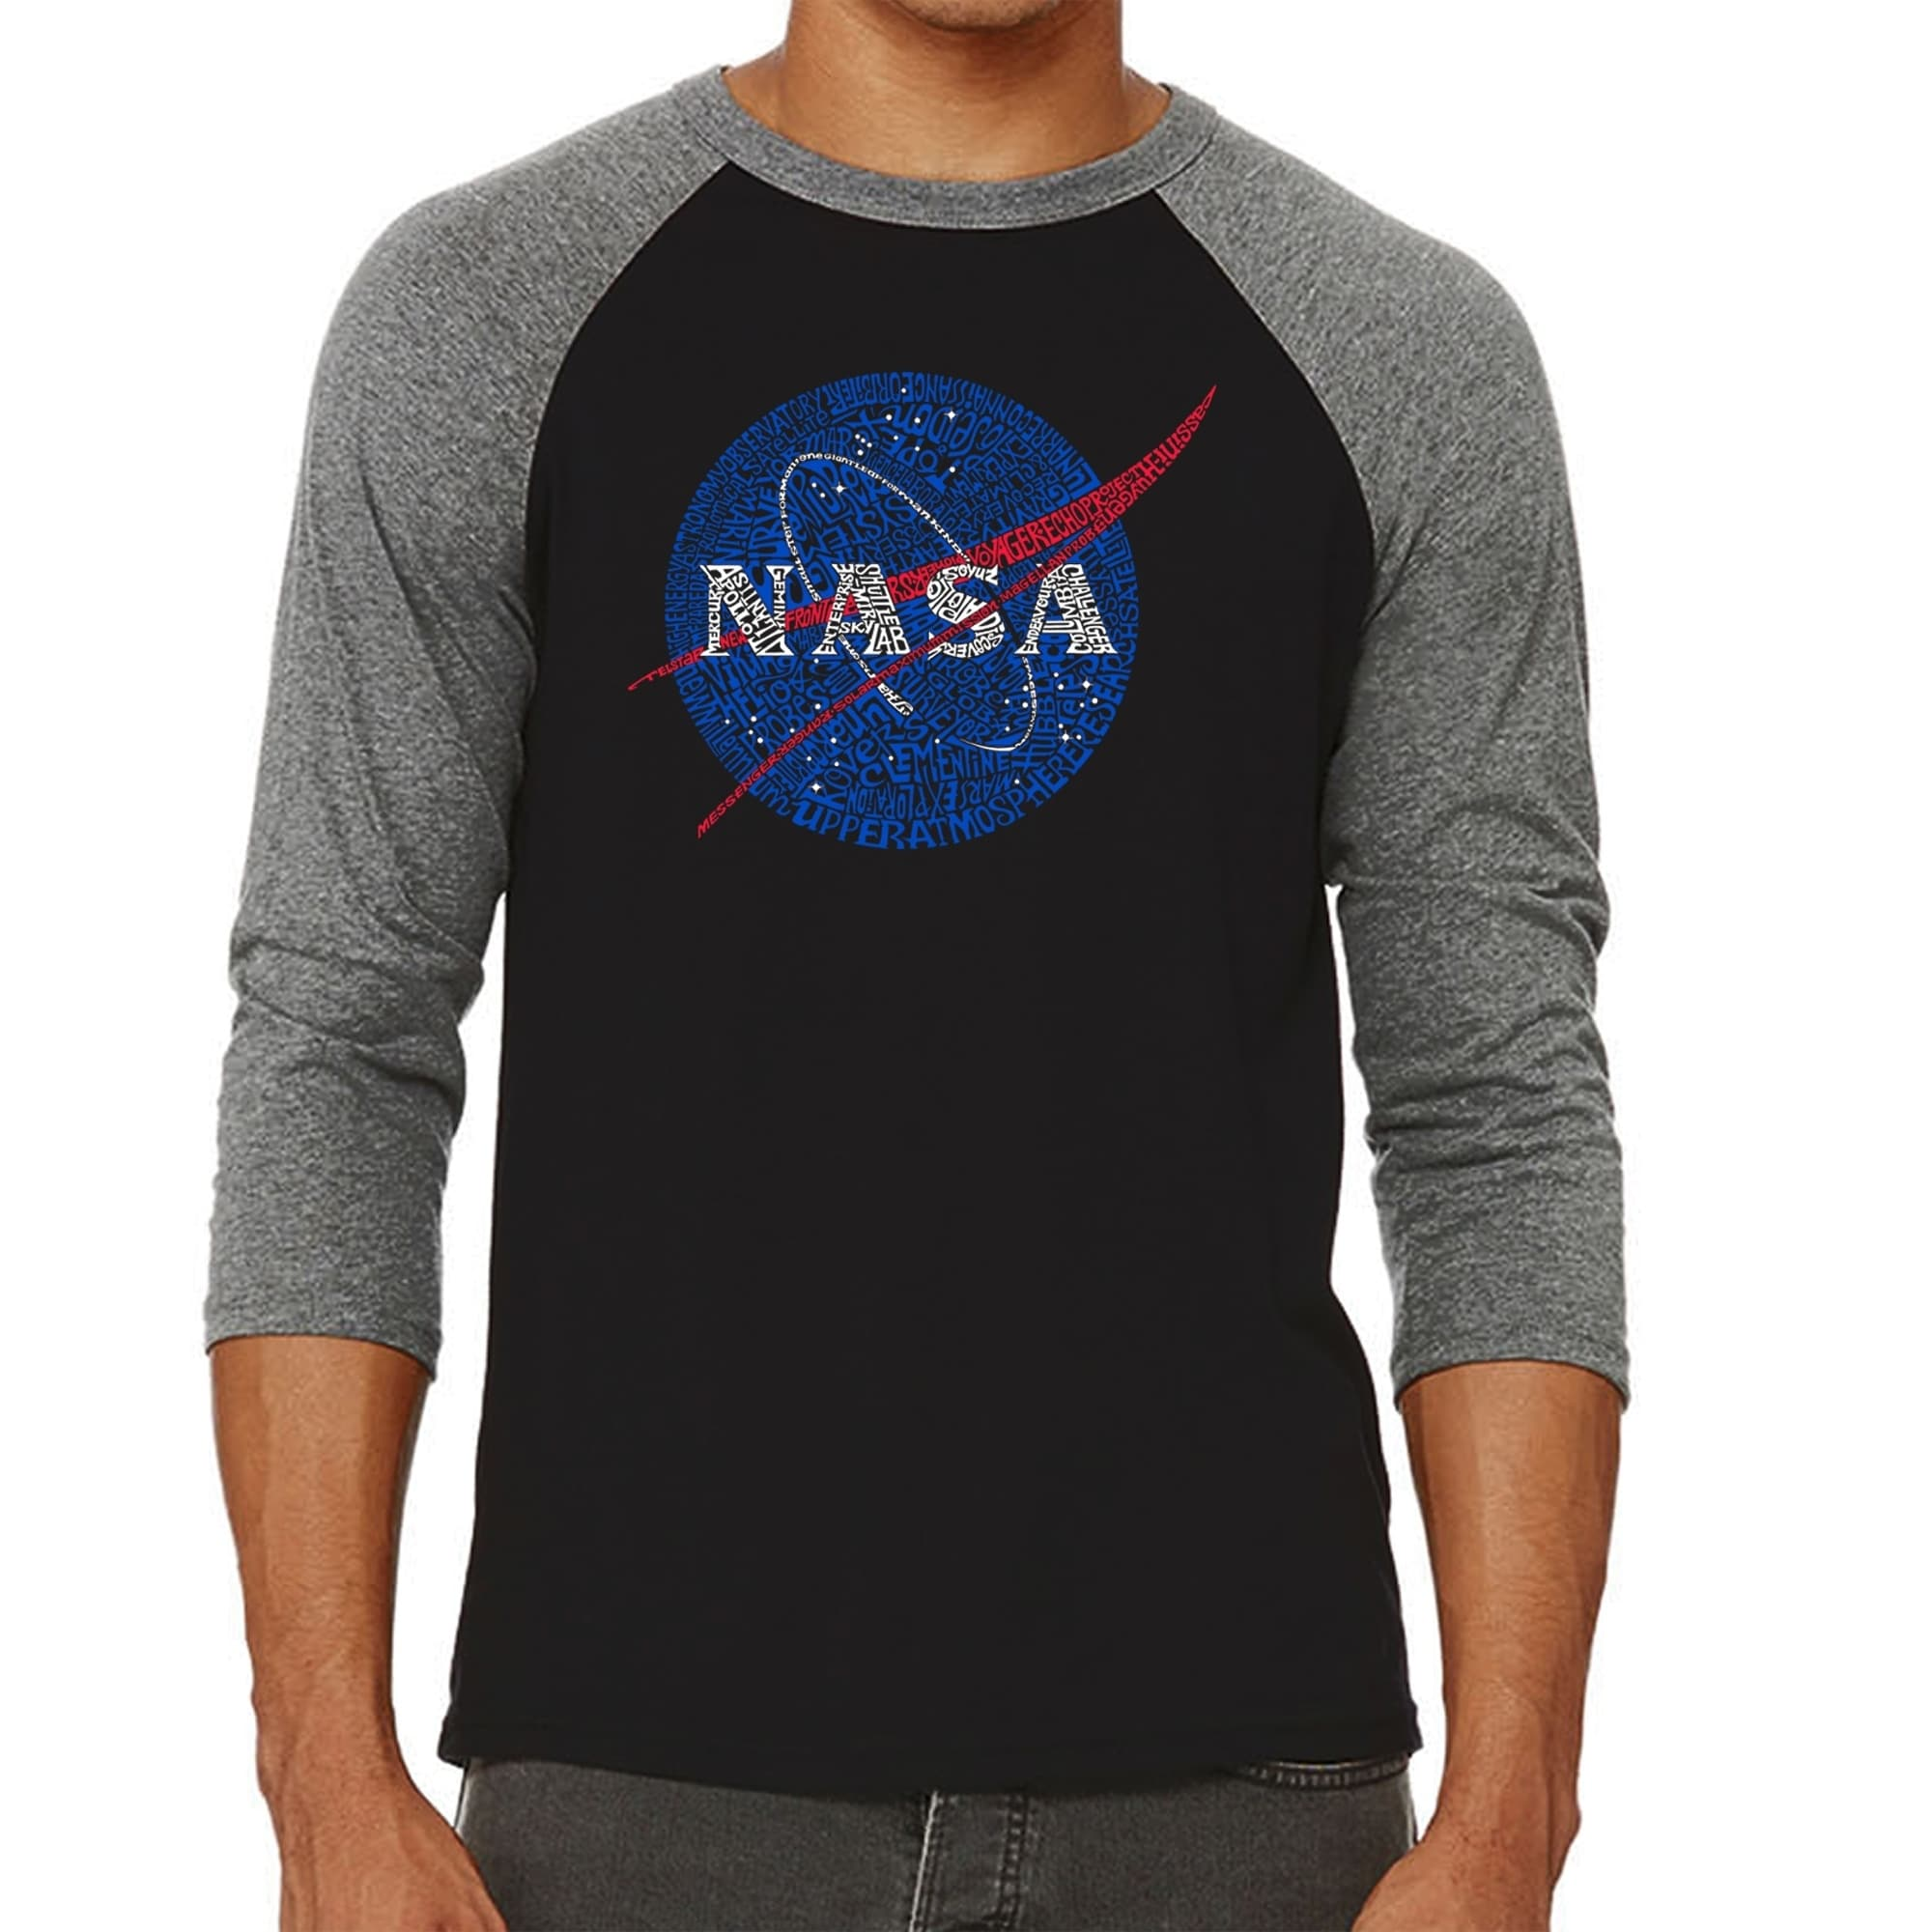 0d7ce229a0a6 Shop Los Angeles Pop Art Men's Raglan Baseball Word Art T-shirt - NASA's  Most Notable Missions - Free Shipping On Orders Over $45 - Overstock -  21025386